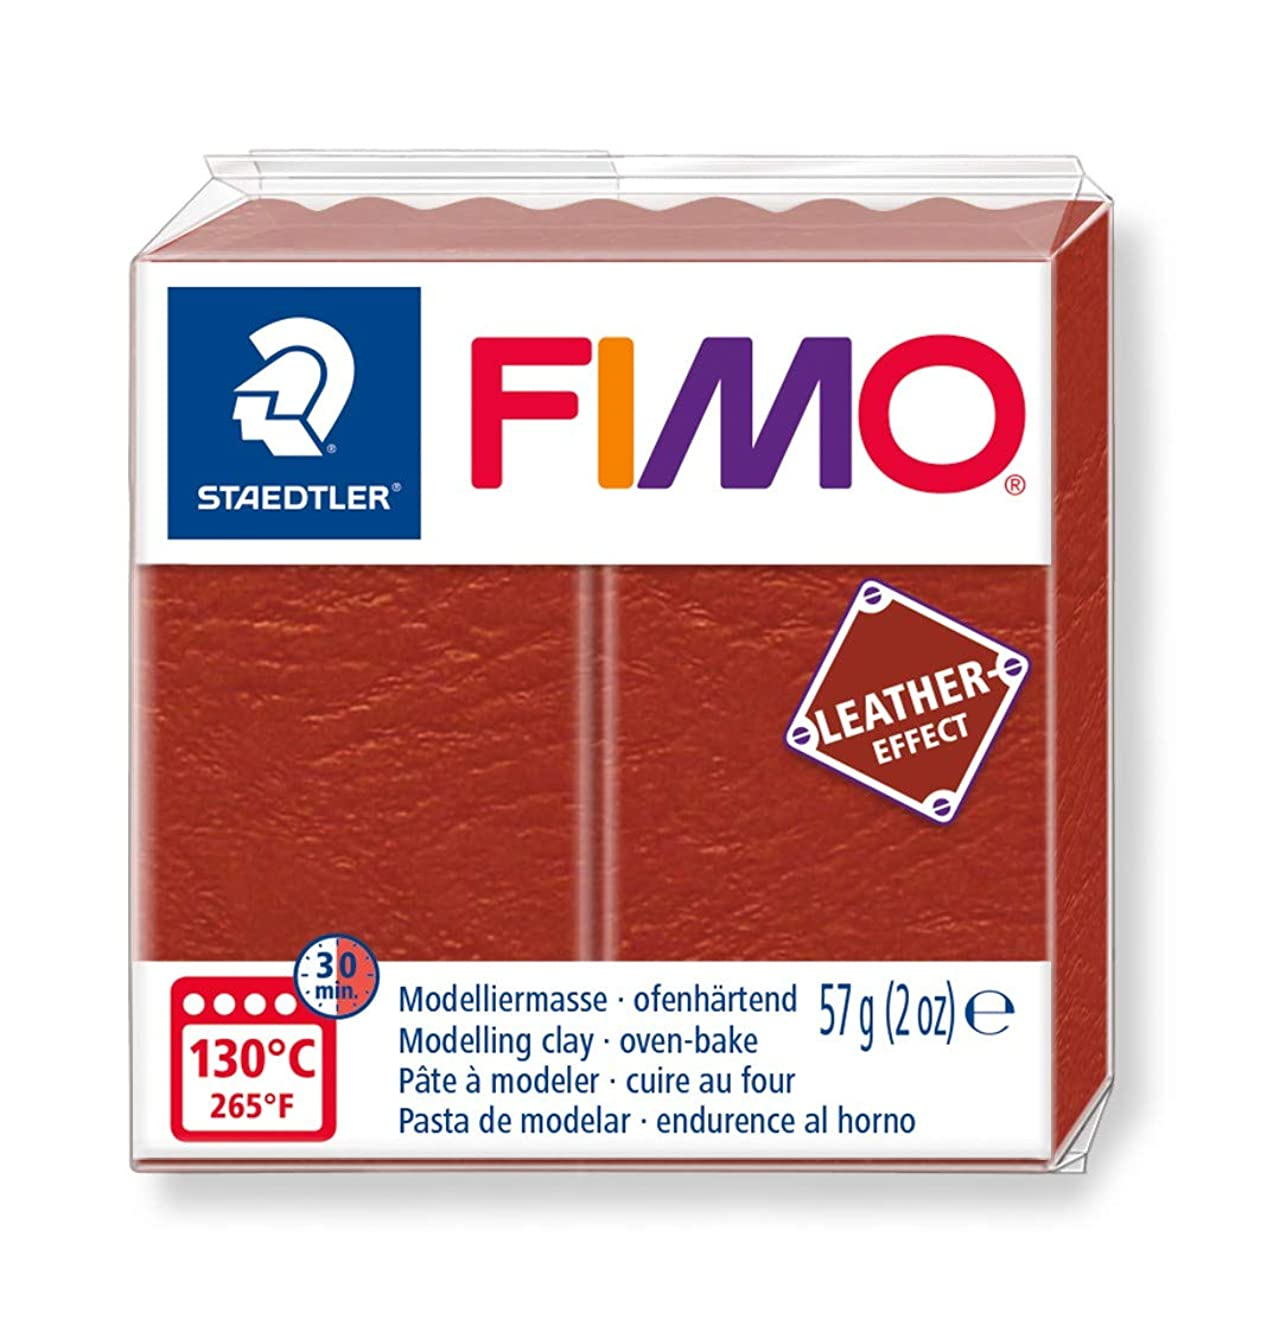 STAEDTLER ST FIMO Leather-Effect Oven-Hardening Modelling Clay for Creative Objects Leather Look Leather-Like Look and Feel Rust Colour 8010-749 cmwyynyspg5339